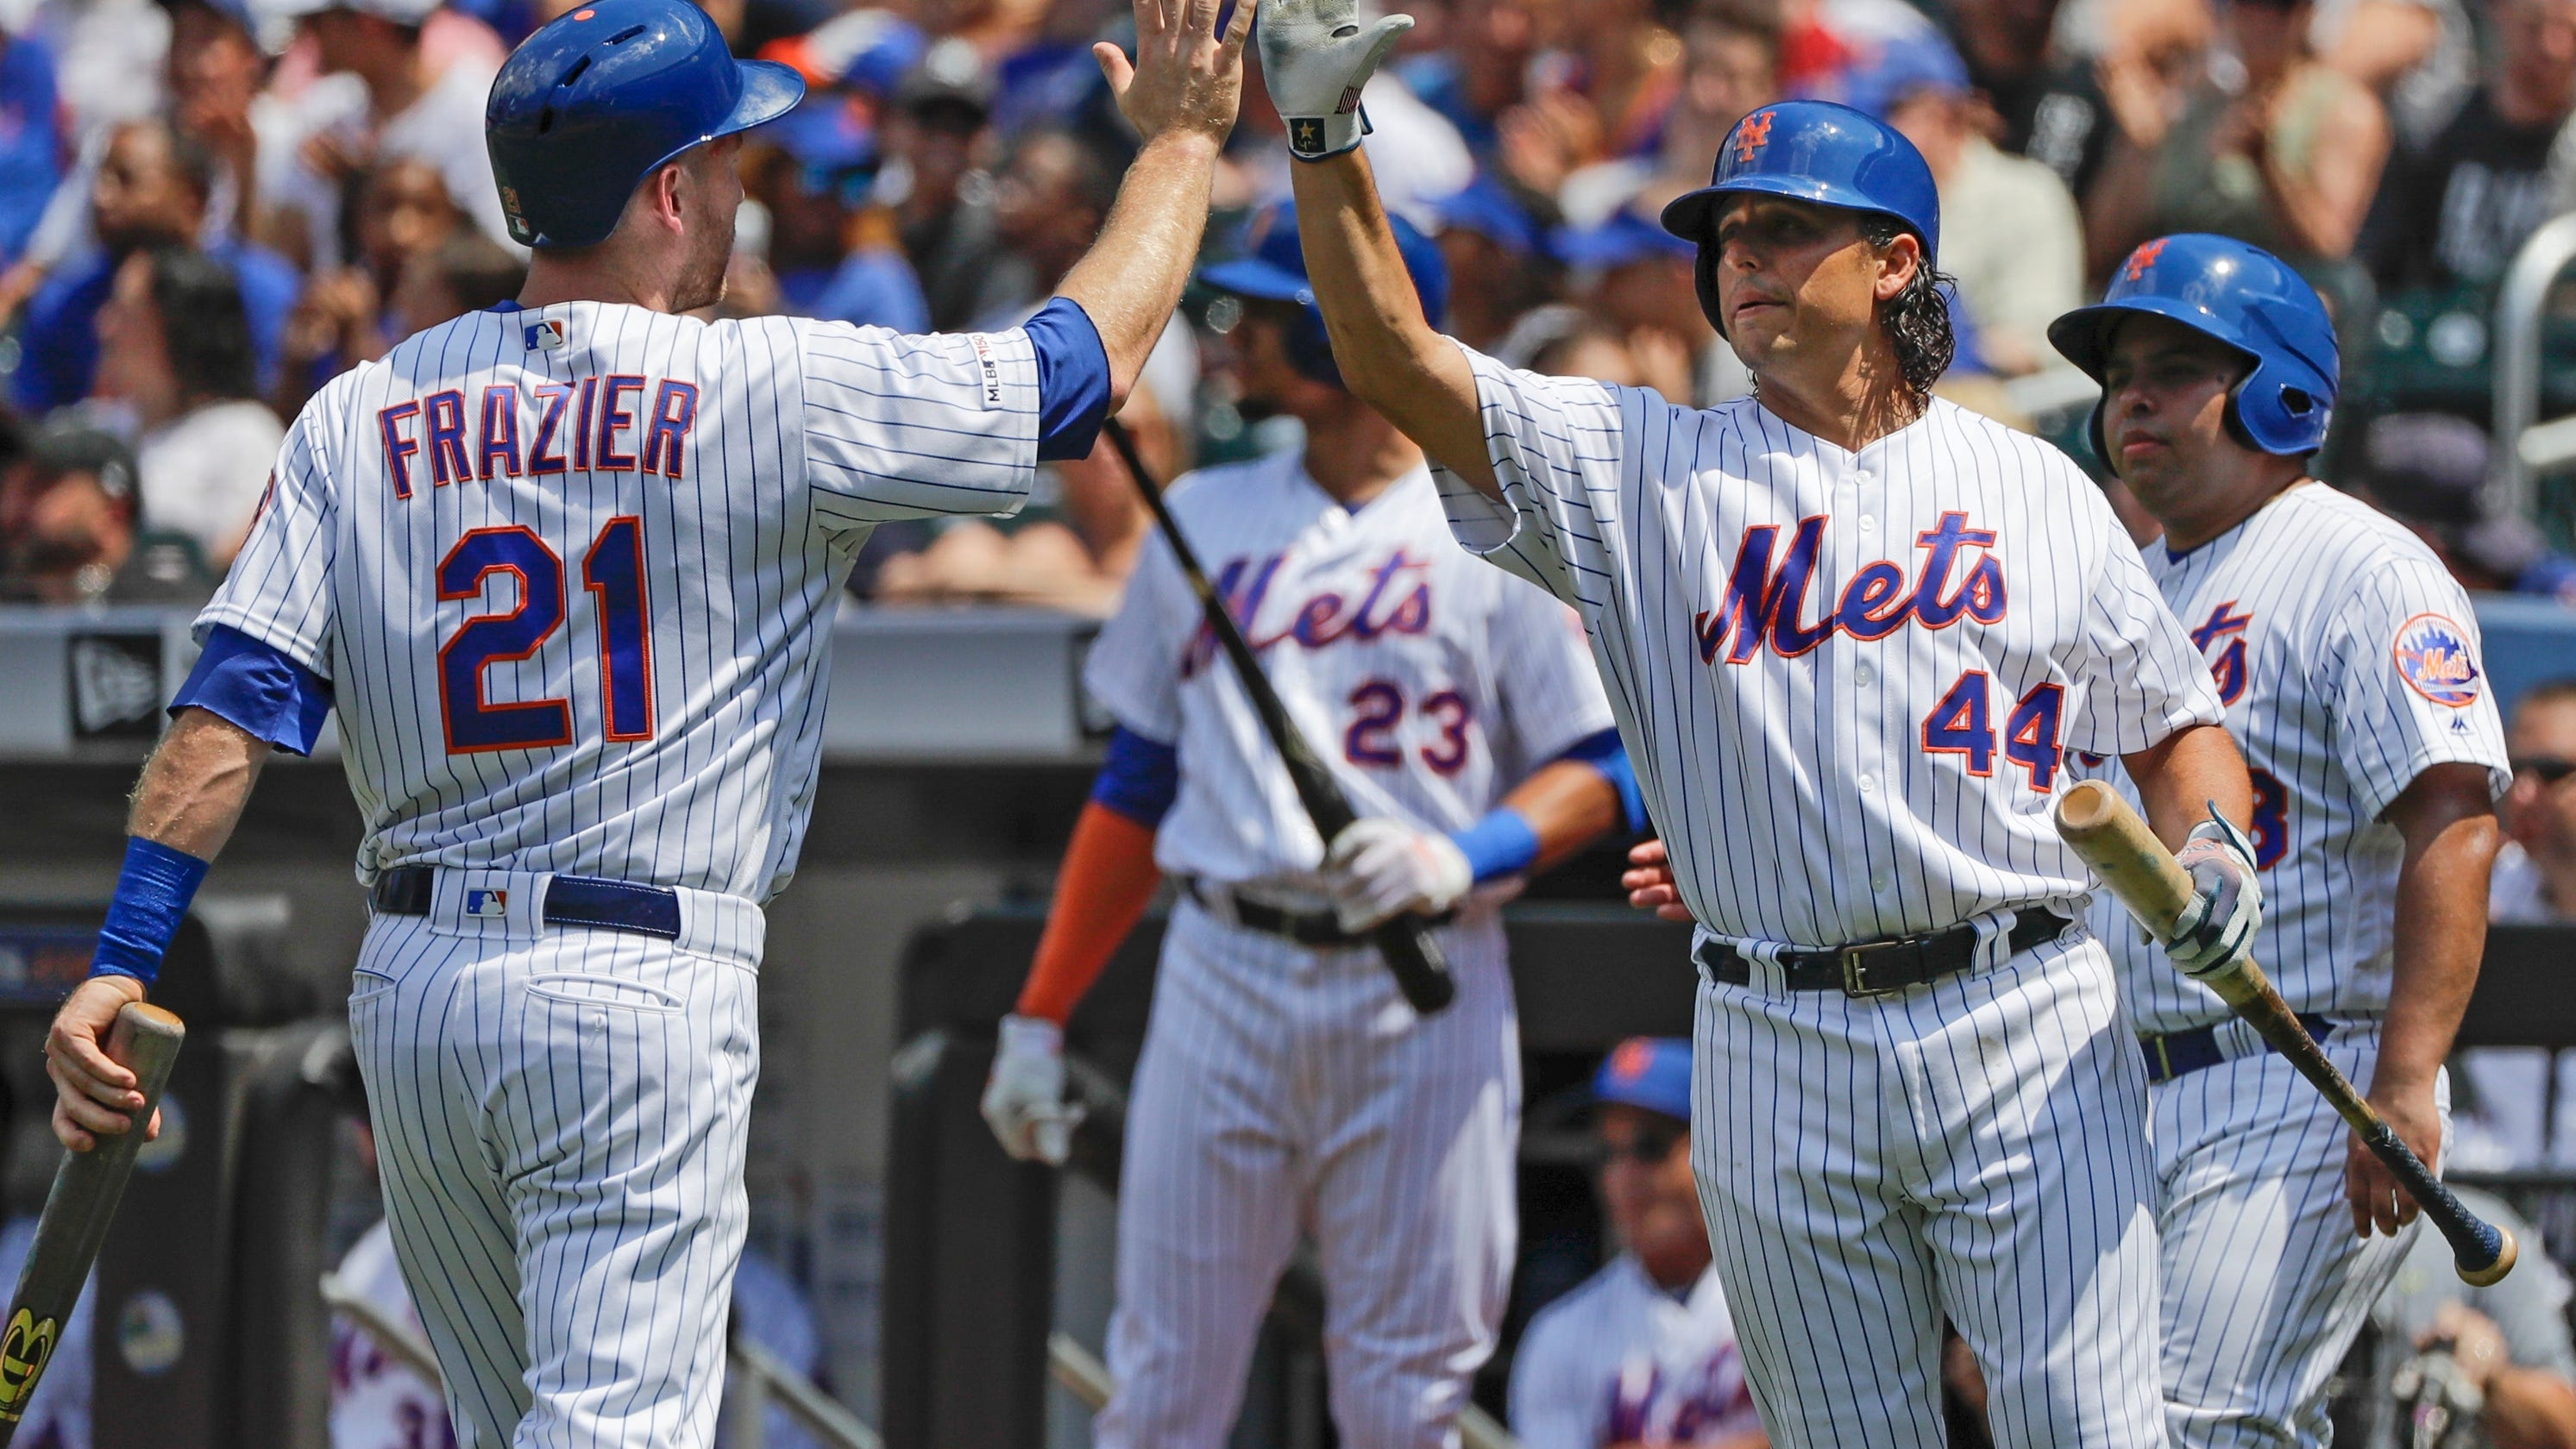 Pirates Swept By Mets, Drop 8th Straight